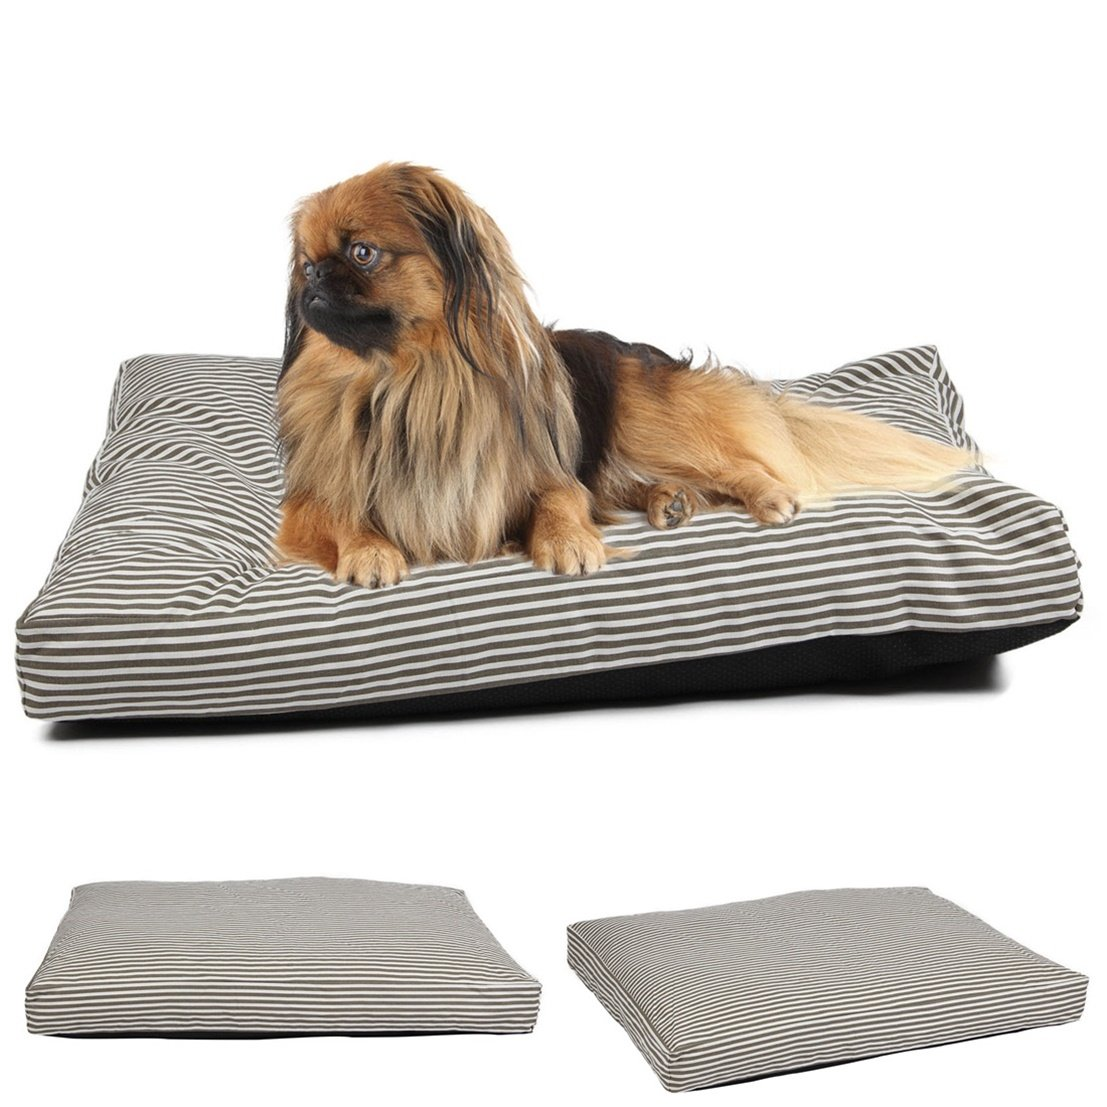 1Pcs Best Popular Pet Bed Cover Size L 36'' x 29'' Large Mat Dog Comfort Replacement Color Type Stripe Canvas